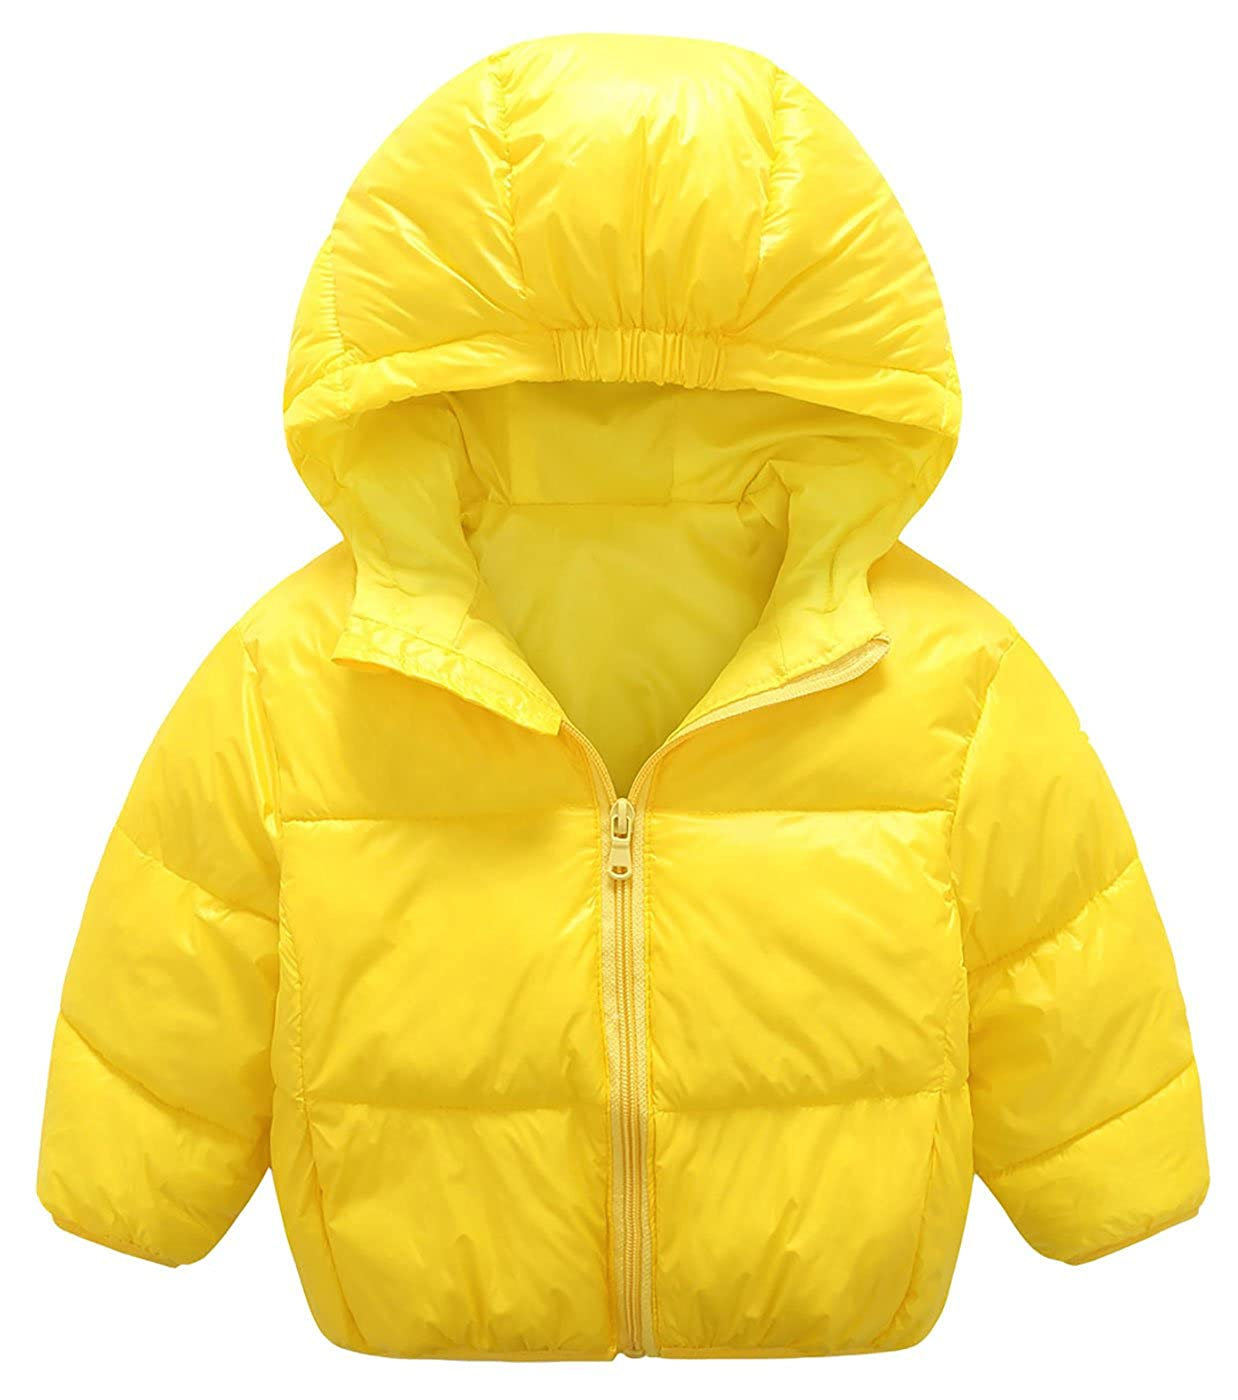 Mengxiaoya Little Kids Down Jacket Winter Lightweight Hoodie Coat Packable Outerwear Yellow 4T-4